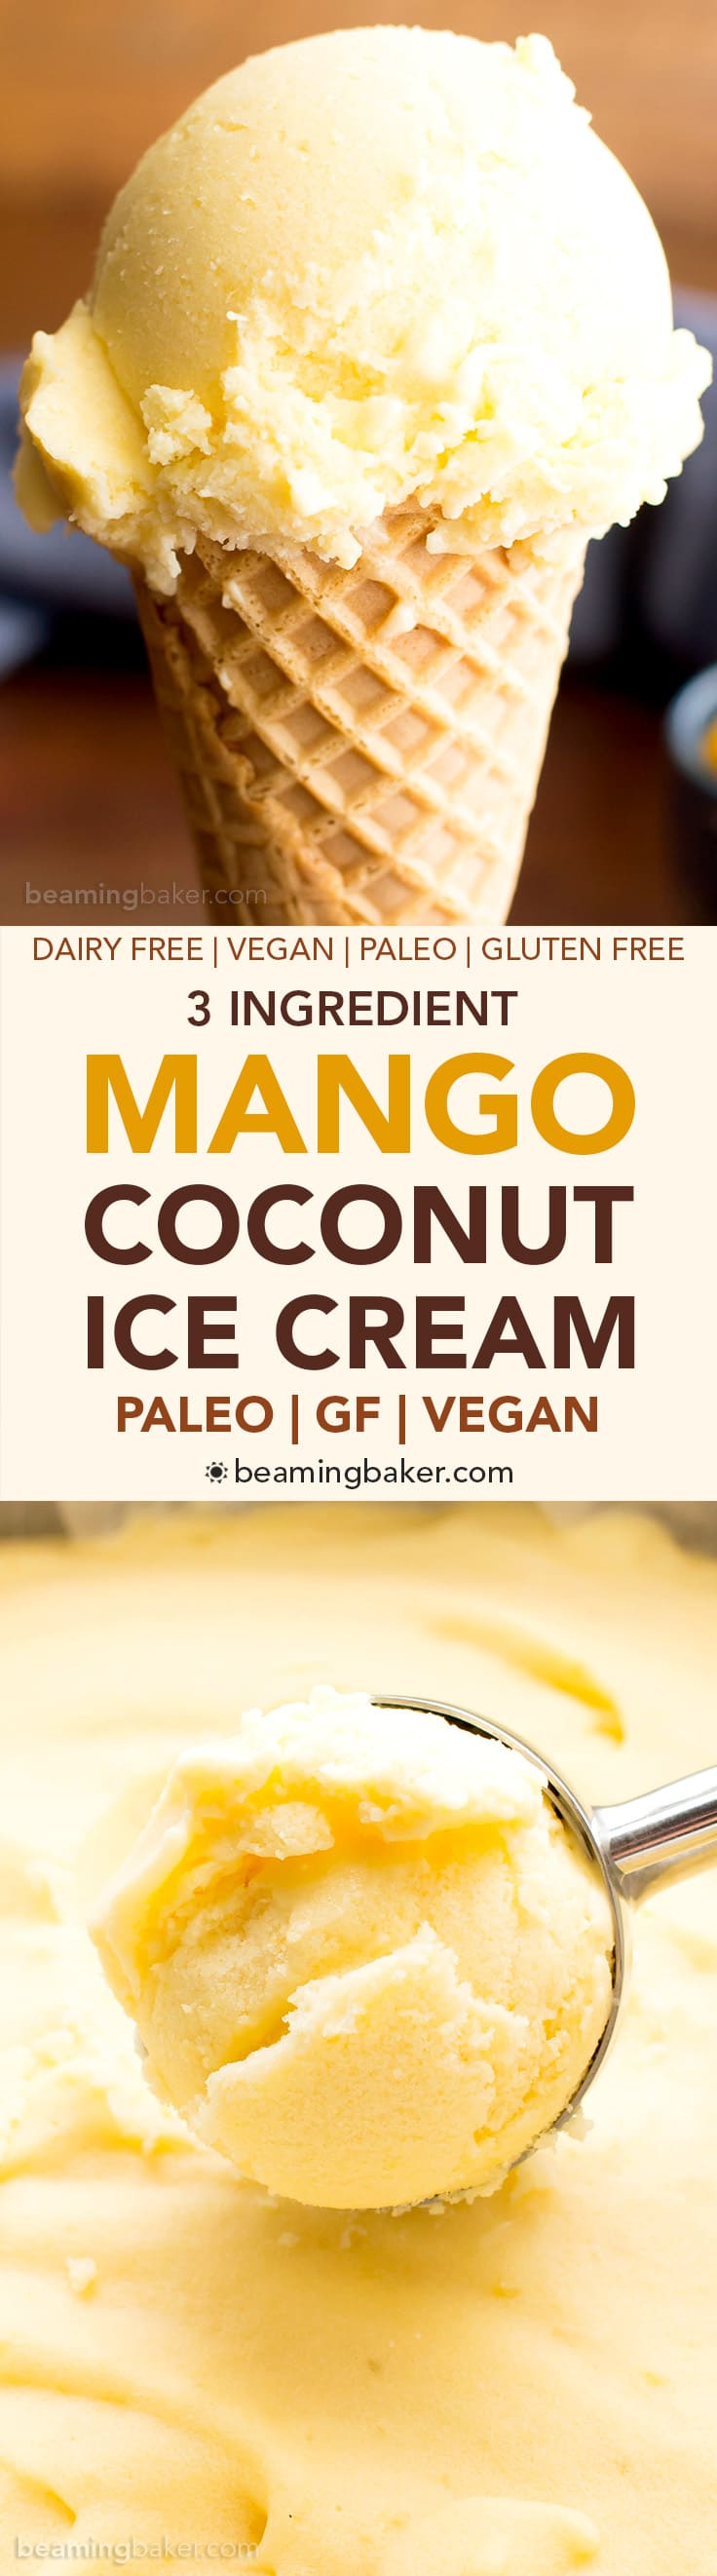 3 Ingredient Mango Coconut Vegan Ice Cream (V, DF, Paleo): an easy, no-churn recipe for deliciously creamy mango ice cream bursting with coconut flavor! #DairyFree #Paleo #Vegan #GlutenFree | BeamingBaker.com